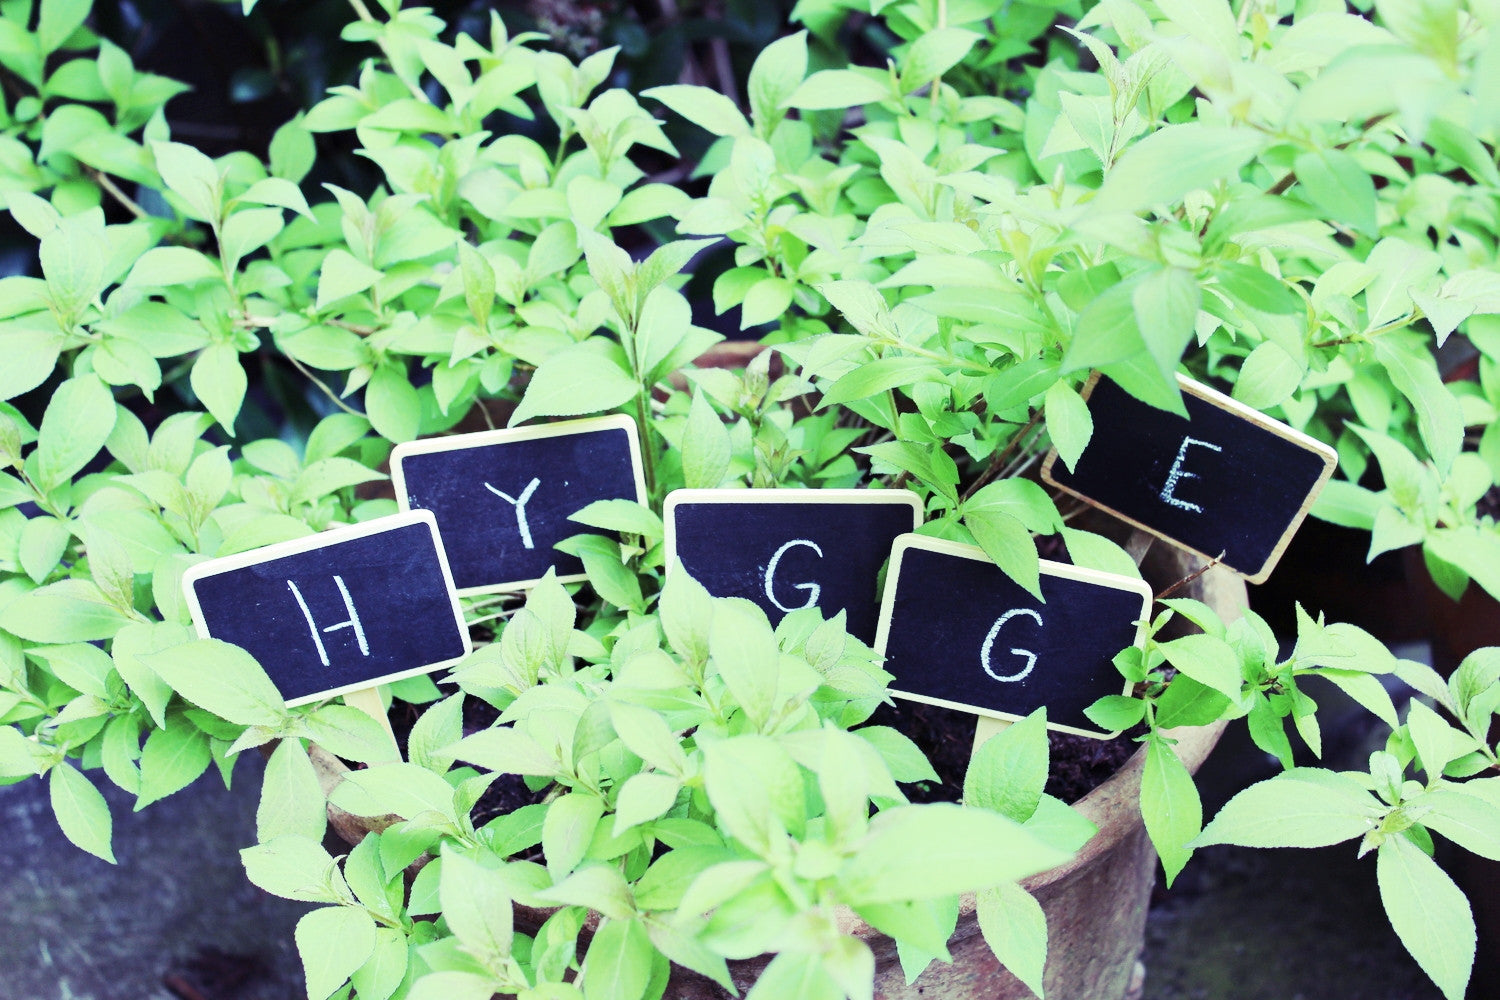 What's Hygge?